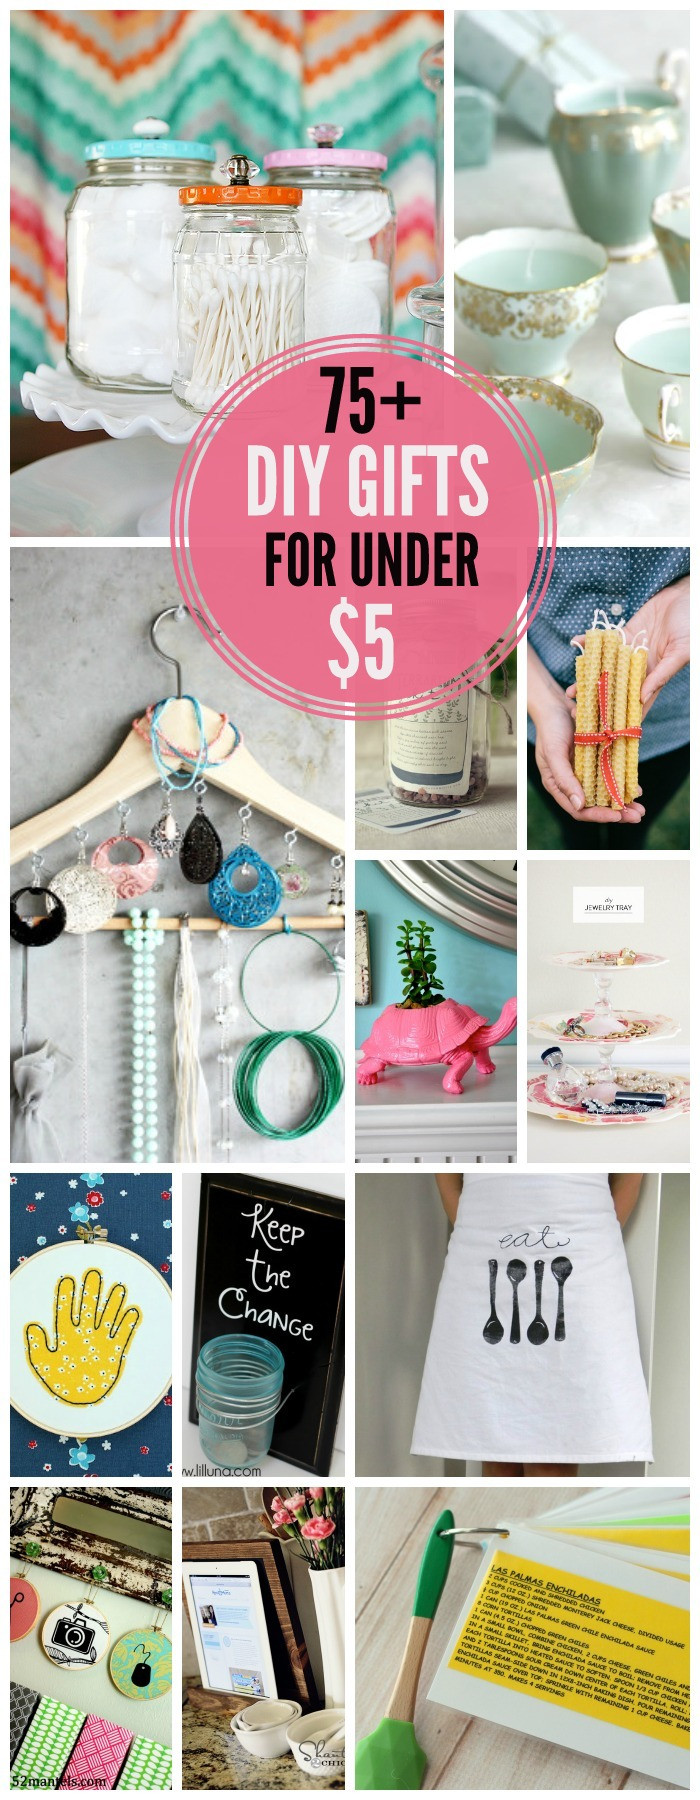 Best ideas about Cheap Gift Ideas . Save or Pin Inexpensive Birthday Gift Ideas Now.